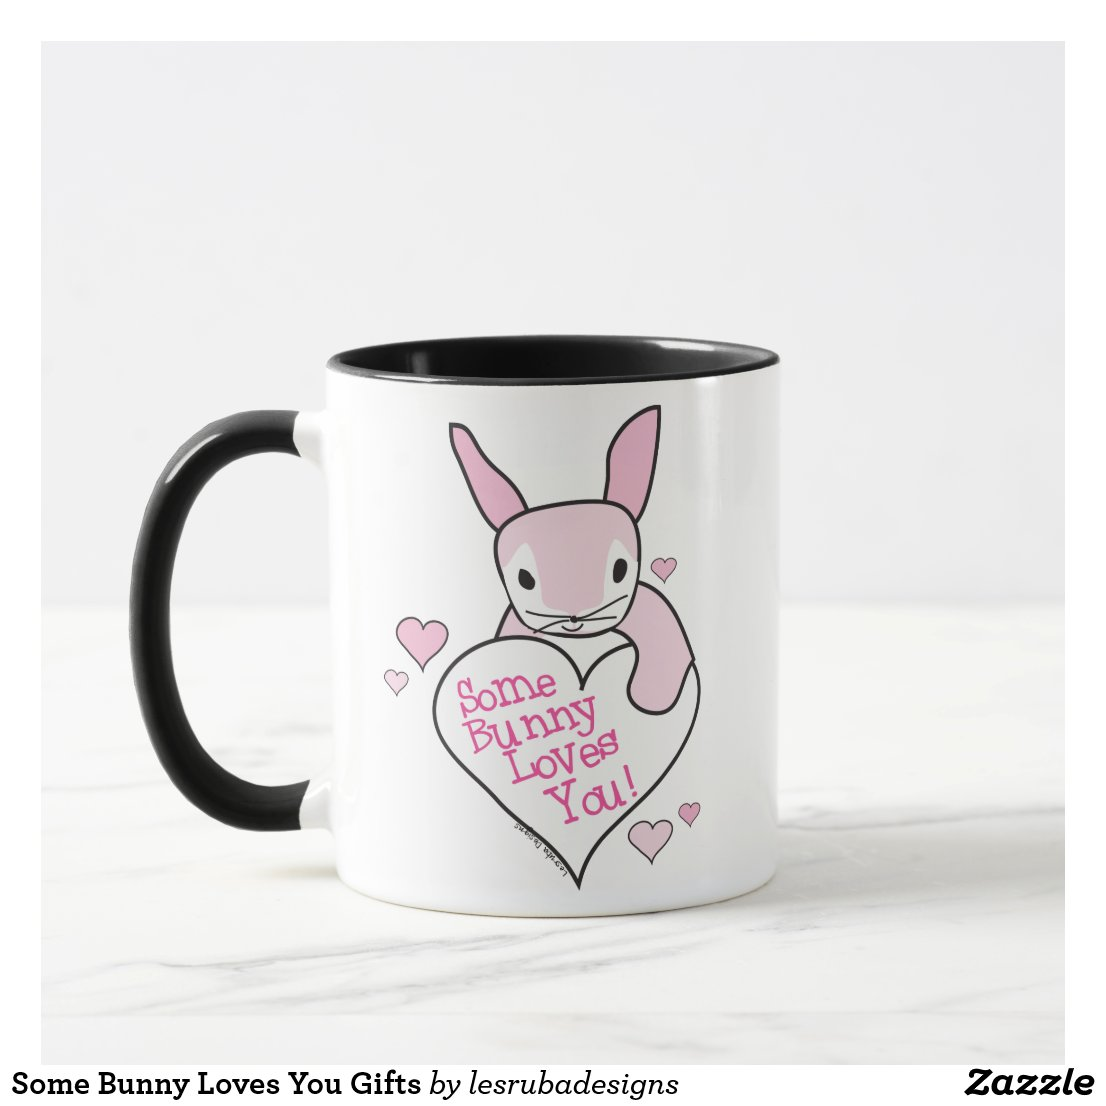 Some Bunny Loves You Gifts